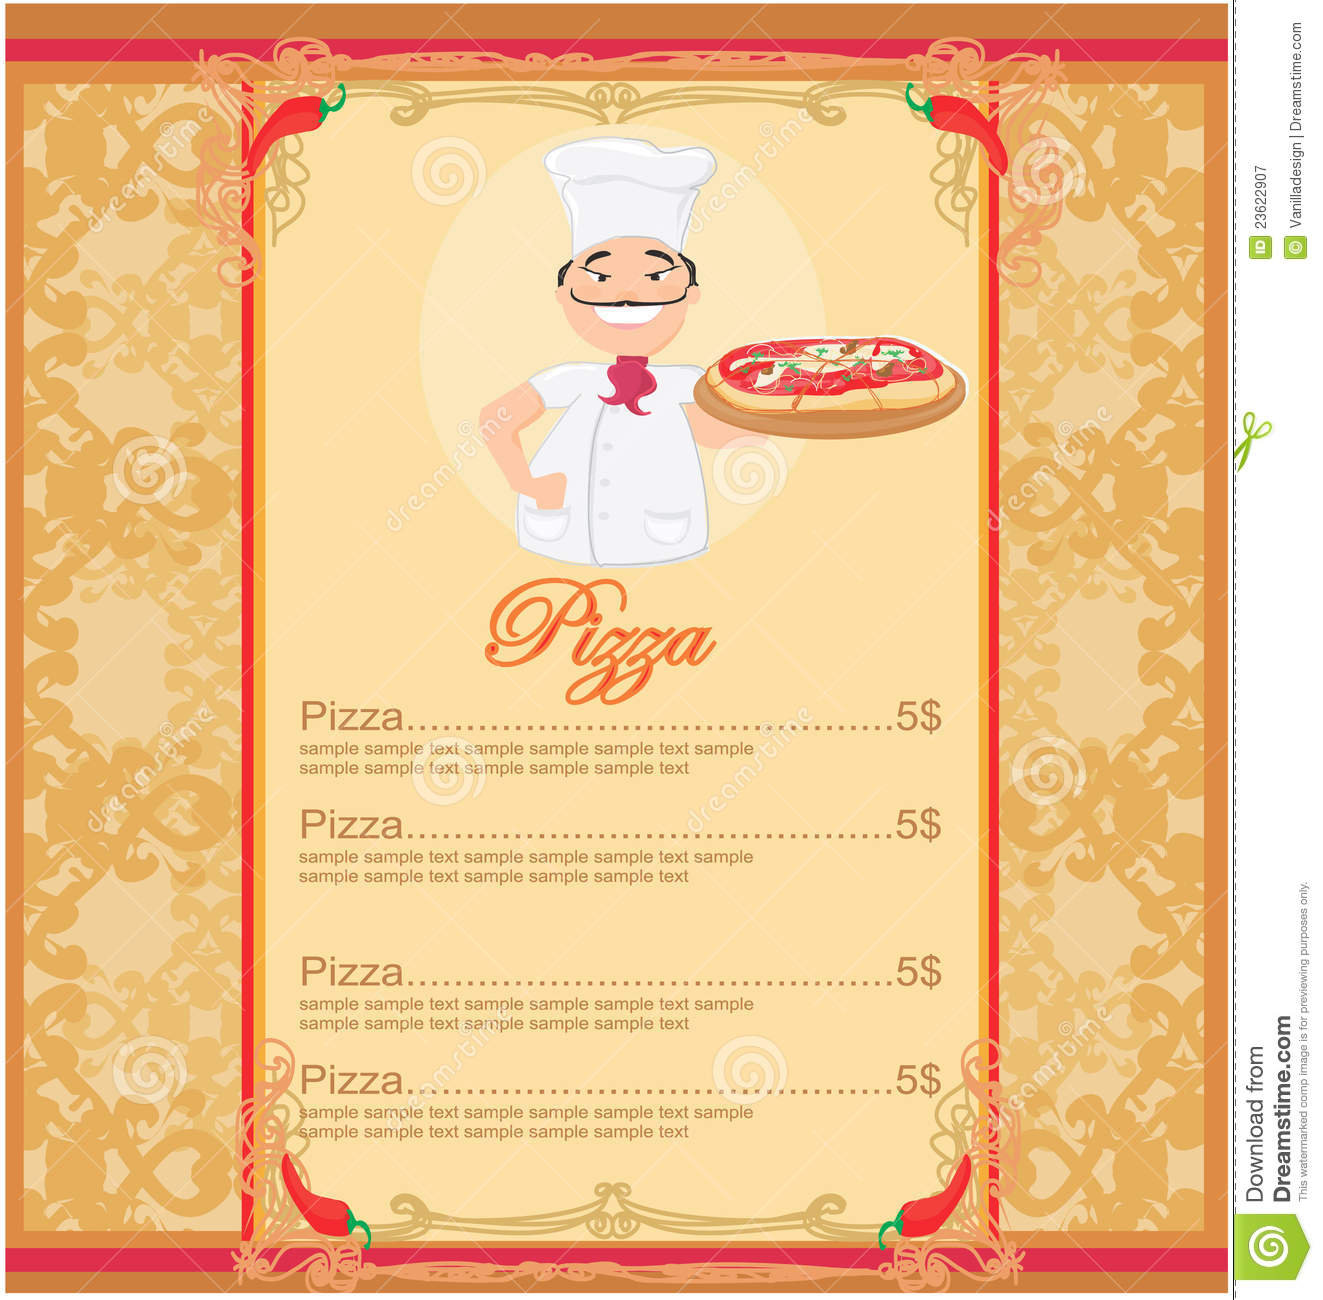 Pizza Menu Template Royalty Free Stock Photography  Image 23622907